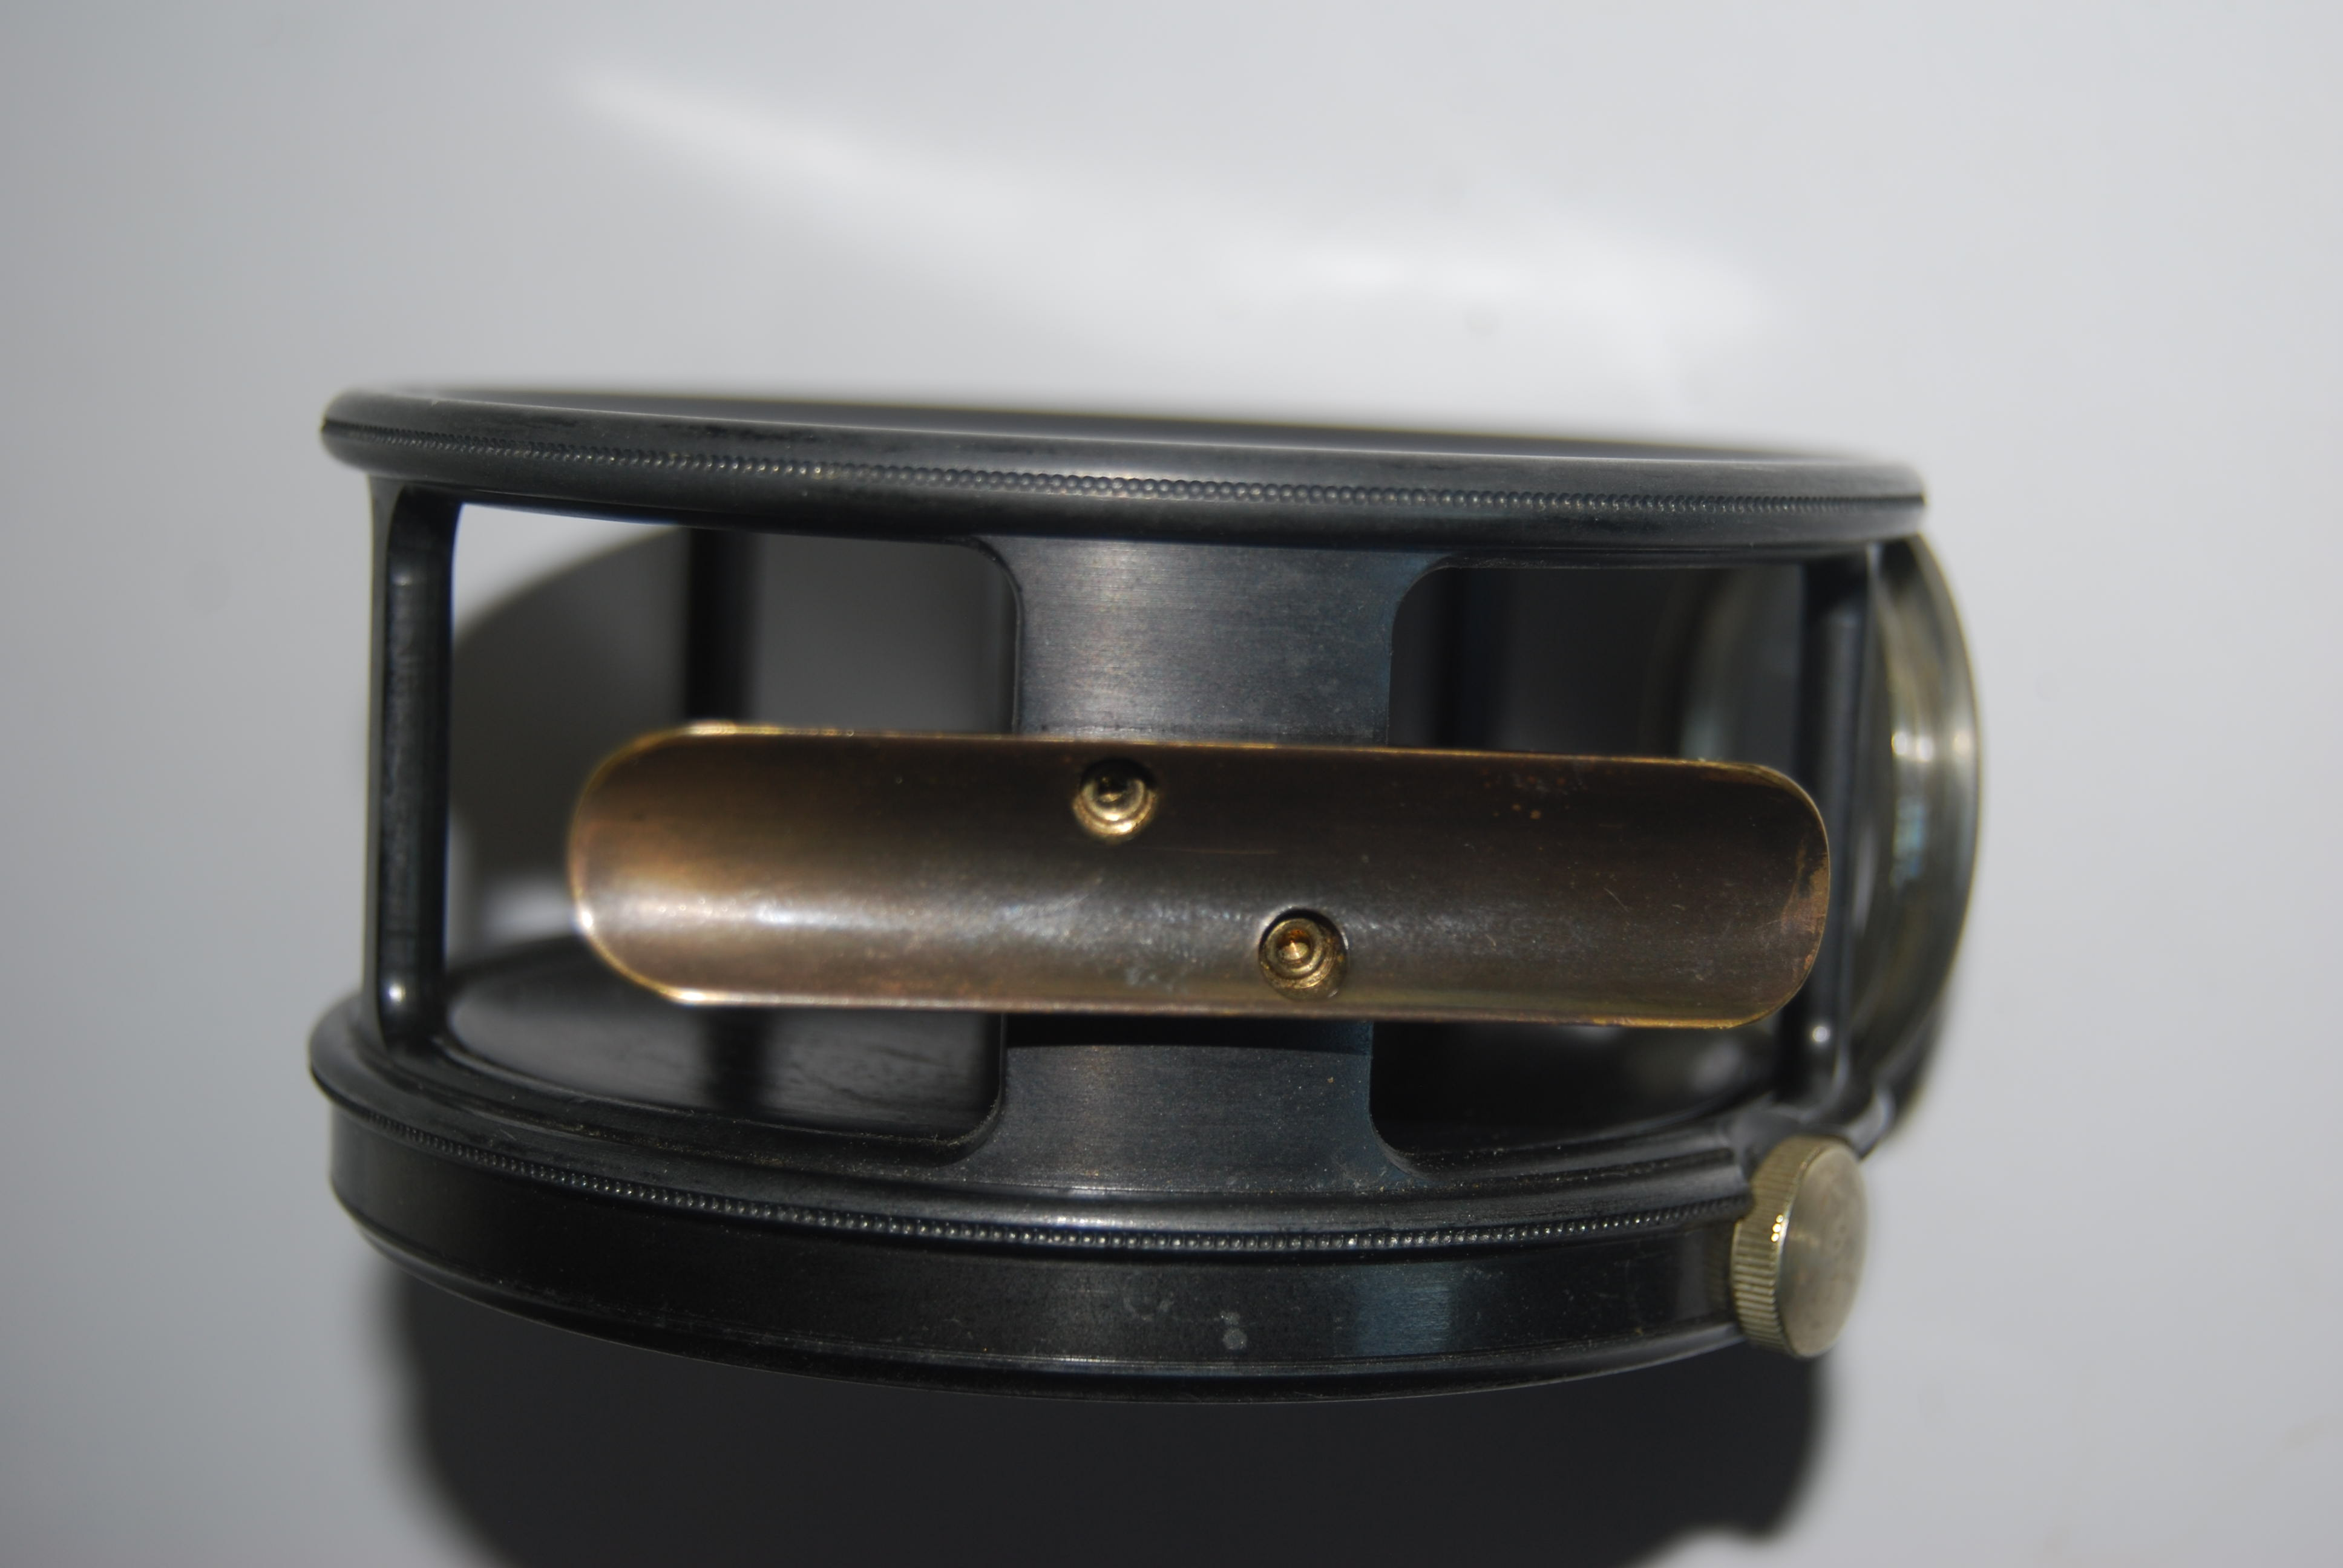 "Image for 4"" HARDY PERFECT SALMON Wide Spool. Circular N/S Line Guard. RHW. Short [ 2 5/8""] Ribbed Brass Foot; Ebonite knob; Straight line writing: Dupl. Mk II Check with spares; Spool retaining screw. 14 3/4 oz. Circa 1956-60.  Will hold 8/9/10 Spey line + backing. Grey enamel finish. In Neoprene Case,"